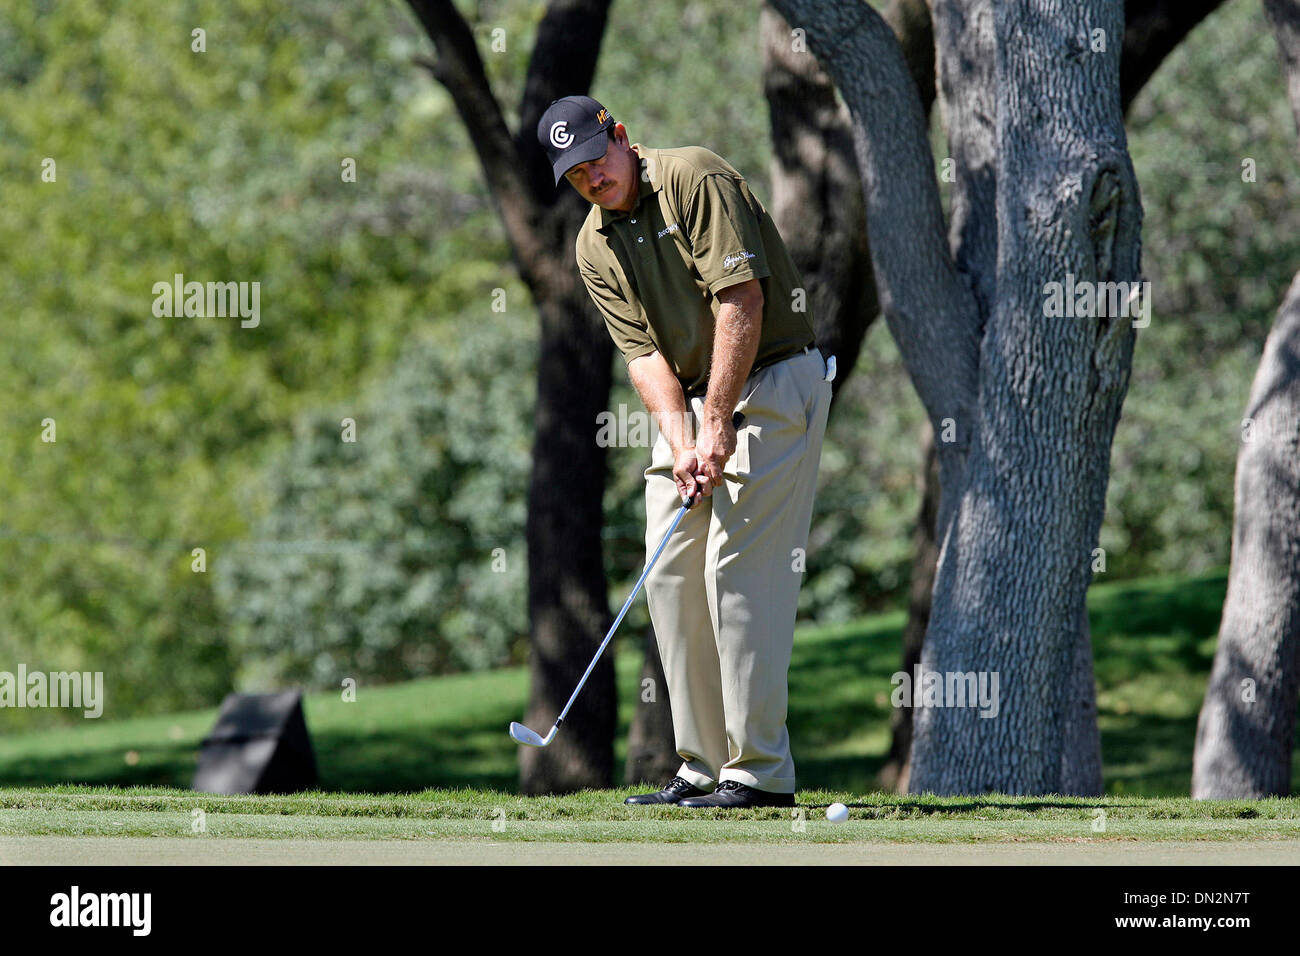 Sep 20, 2006; San Antonio, TX, USA; GOLF: Past Texas Open champion BART BRYANT bumps his ball back up on the putting surface at 17 Wednesday during the Valero Texas Open Pro Am. Mandatory Credit: Photo by Tom Reel/San Antonio Express-News/ZUMA Press. (©) Copyright 2006 by San Antonio Express-News - Stock Image